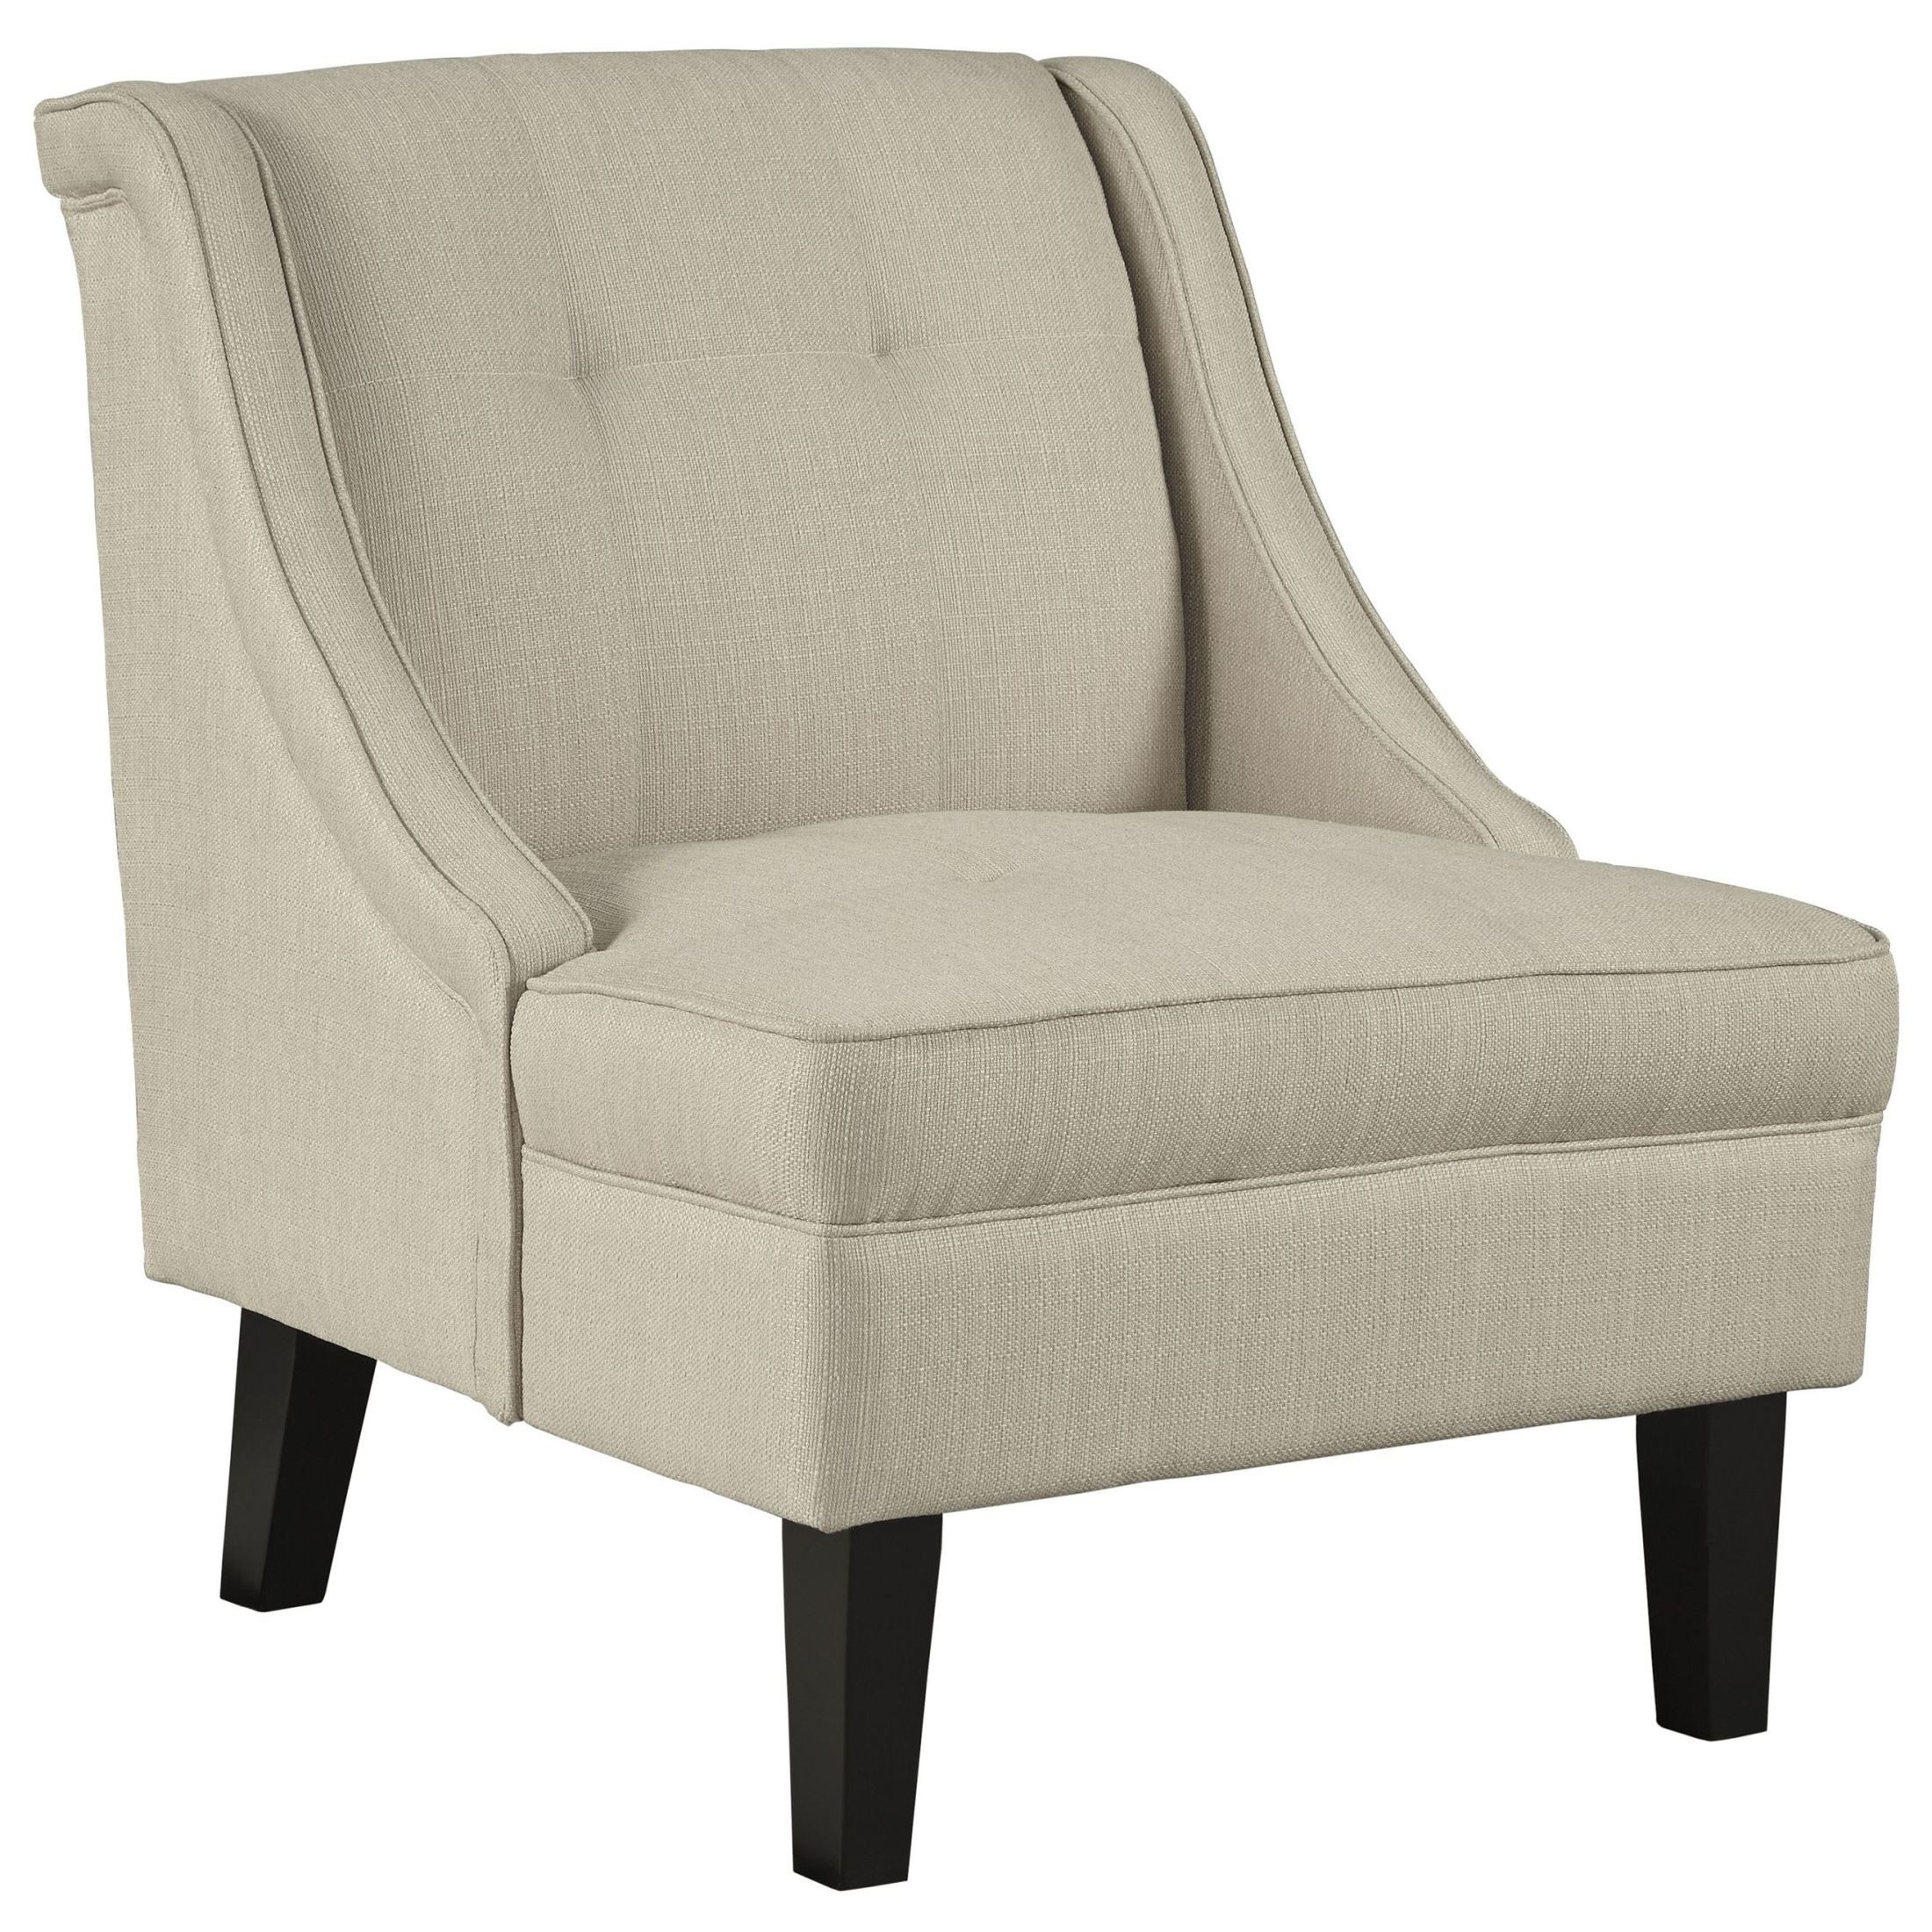 Clarinda Cream Accent Chair from Ashley 3623060